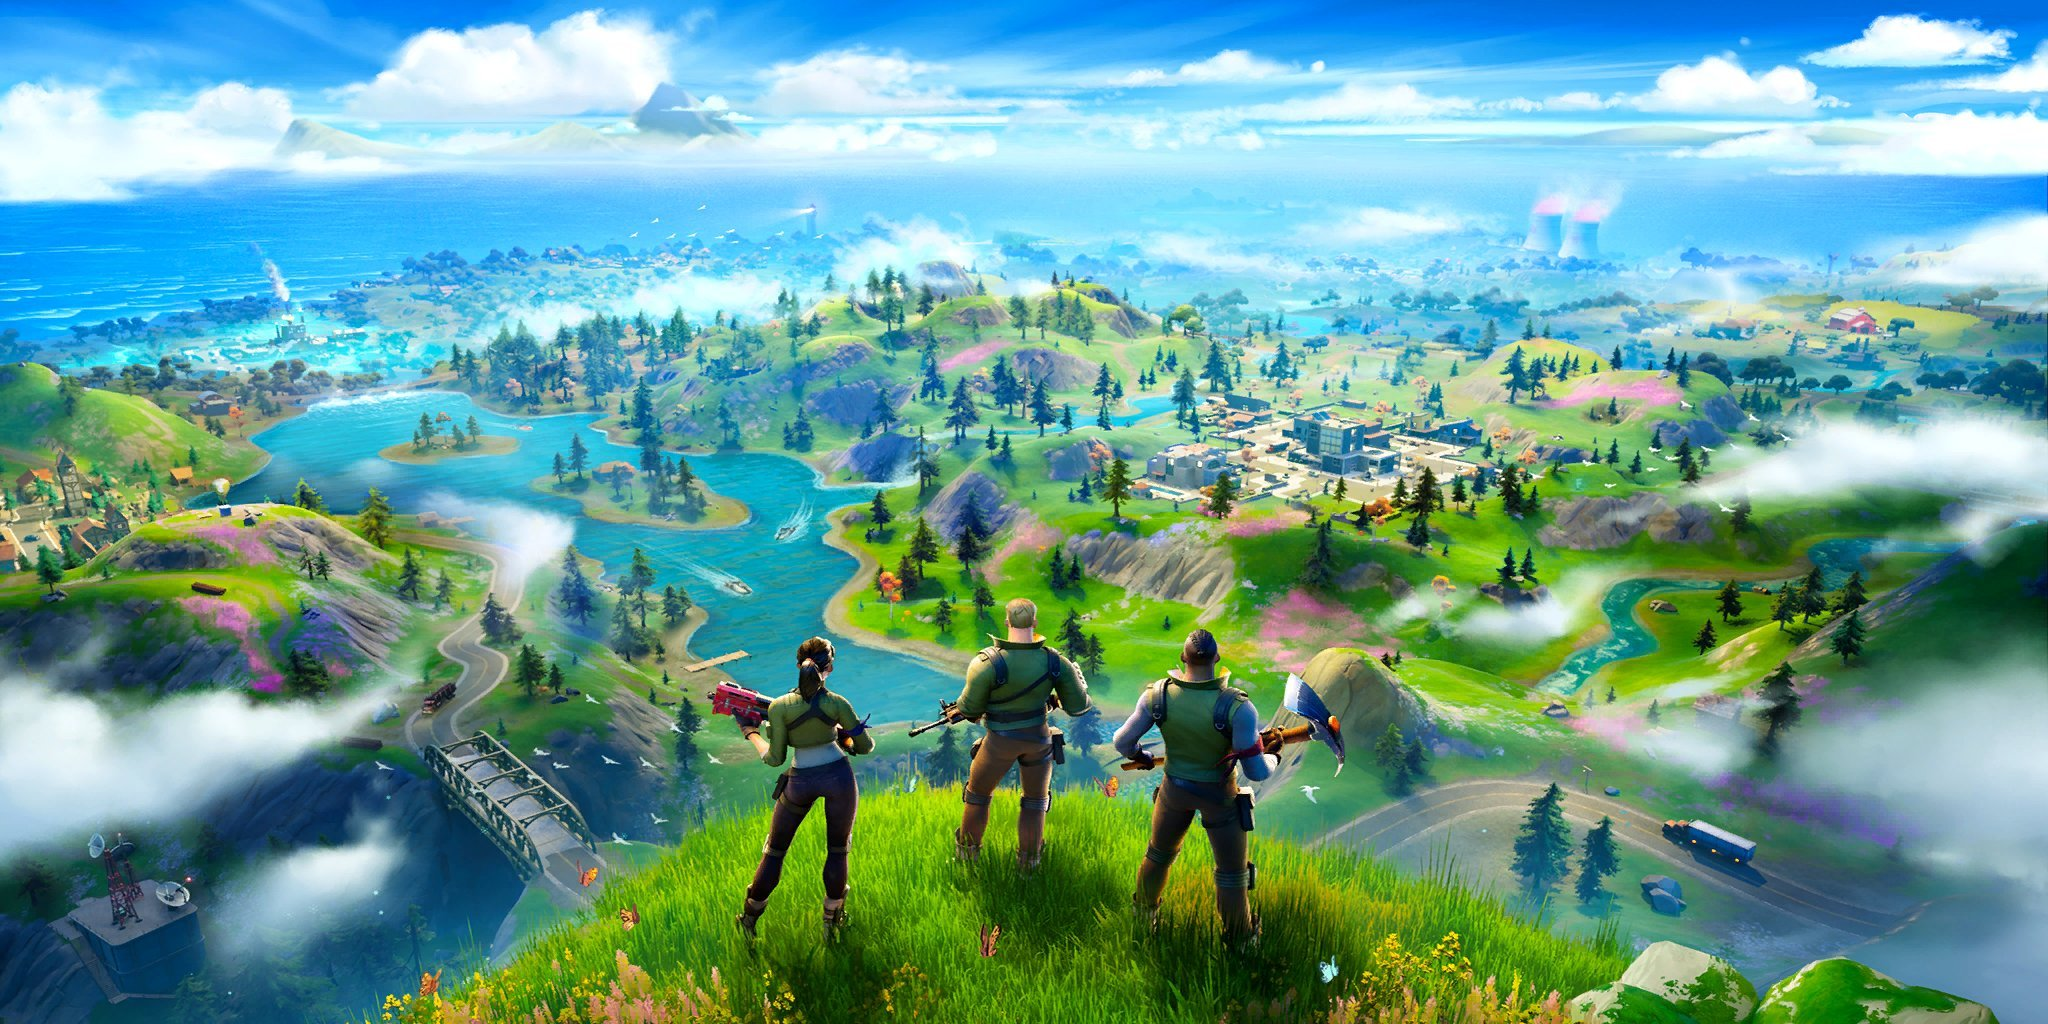 Fortnite Chapter 2 - Season 1 Week 1 New World Loading Screen Reward